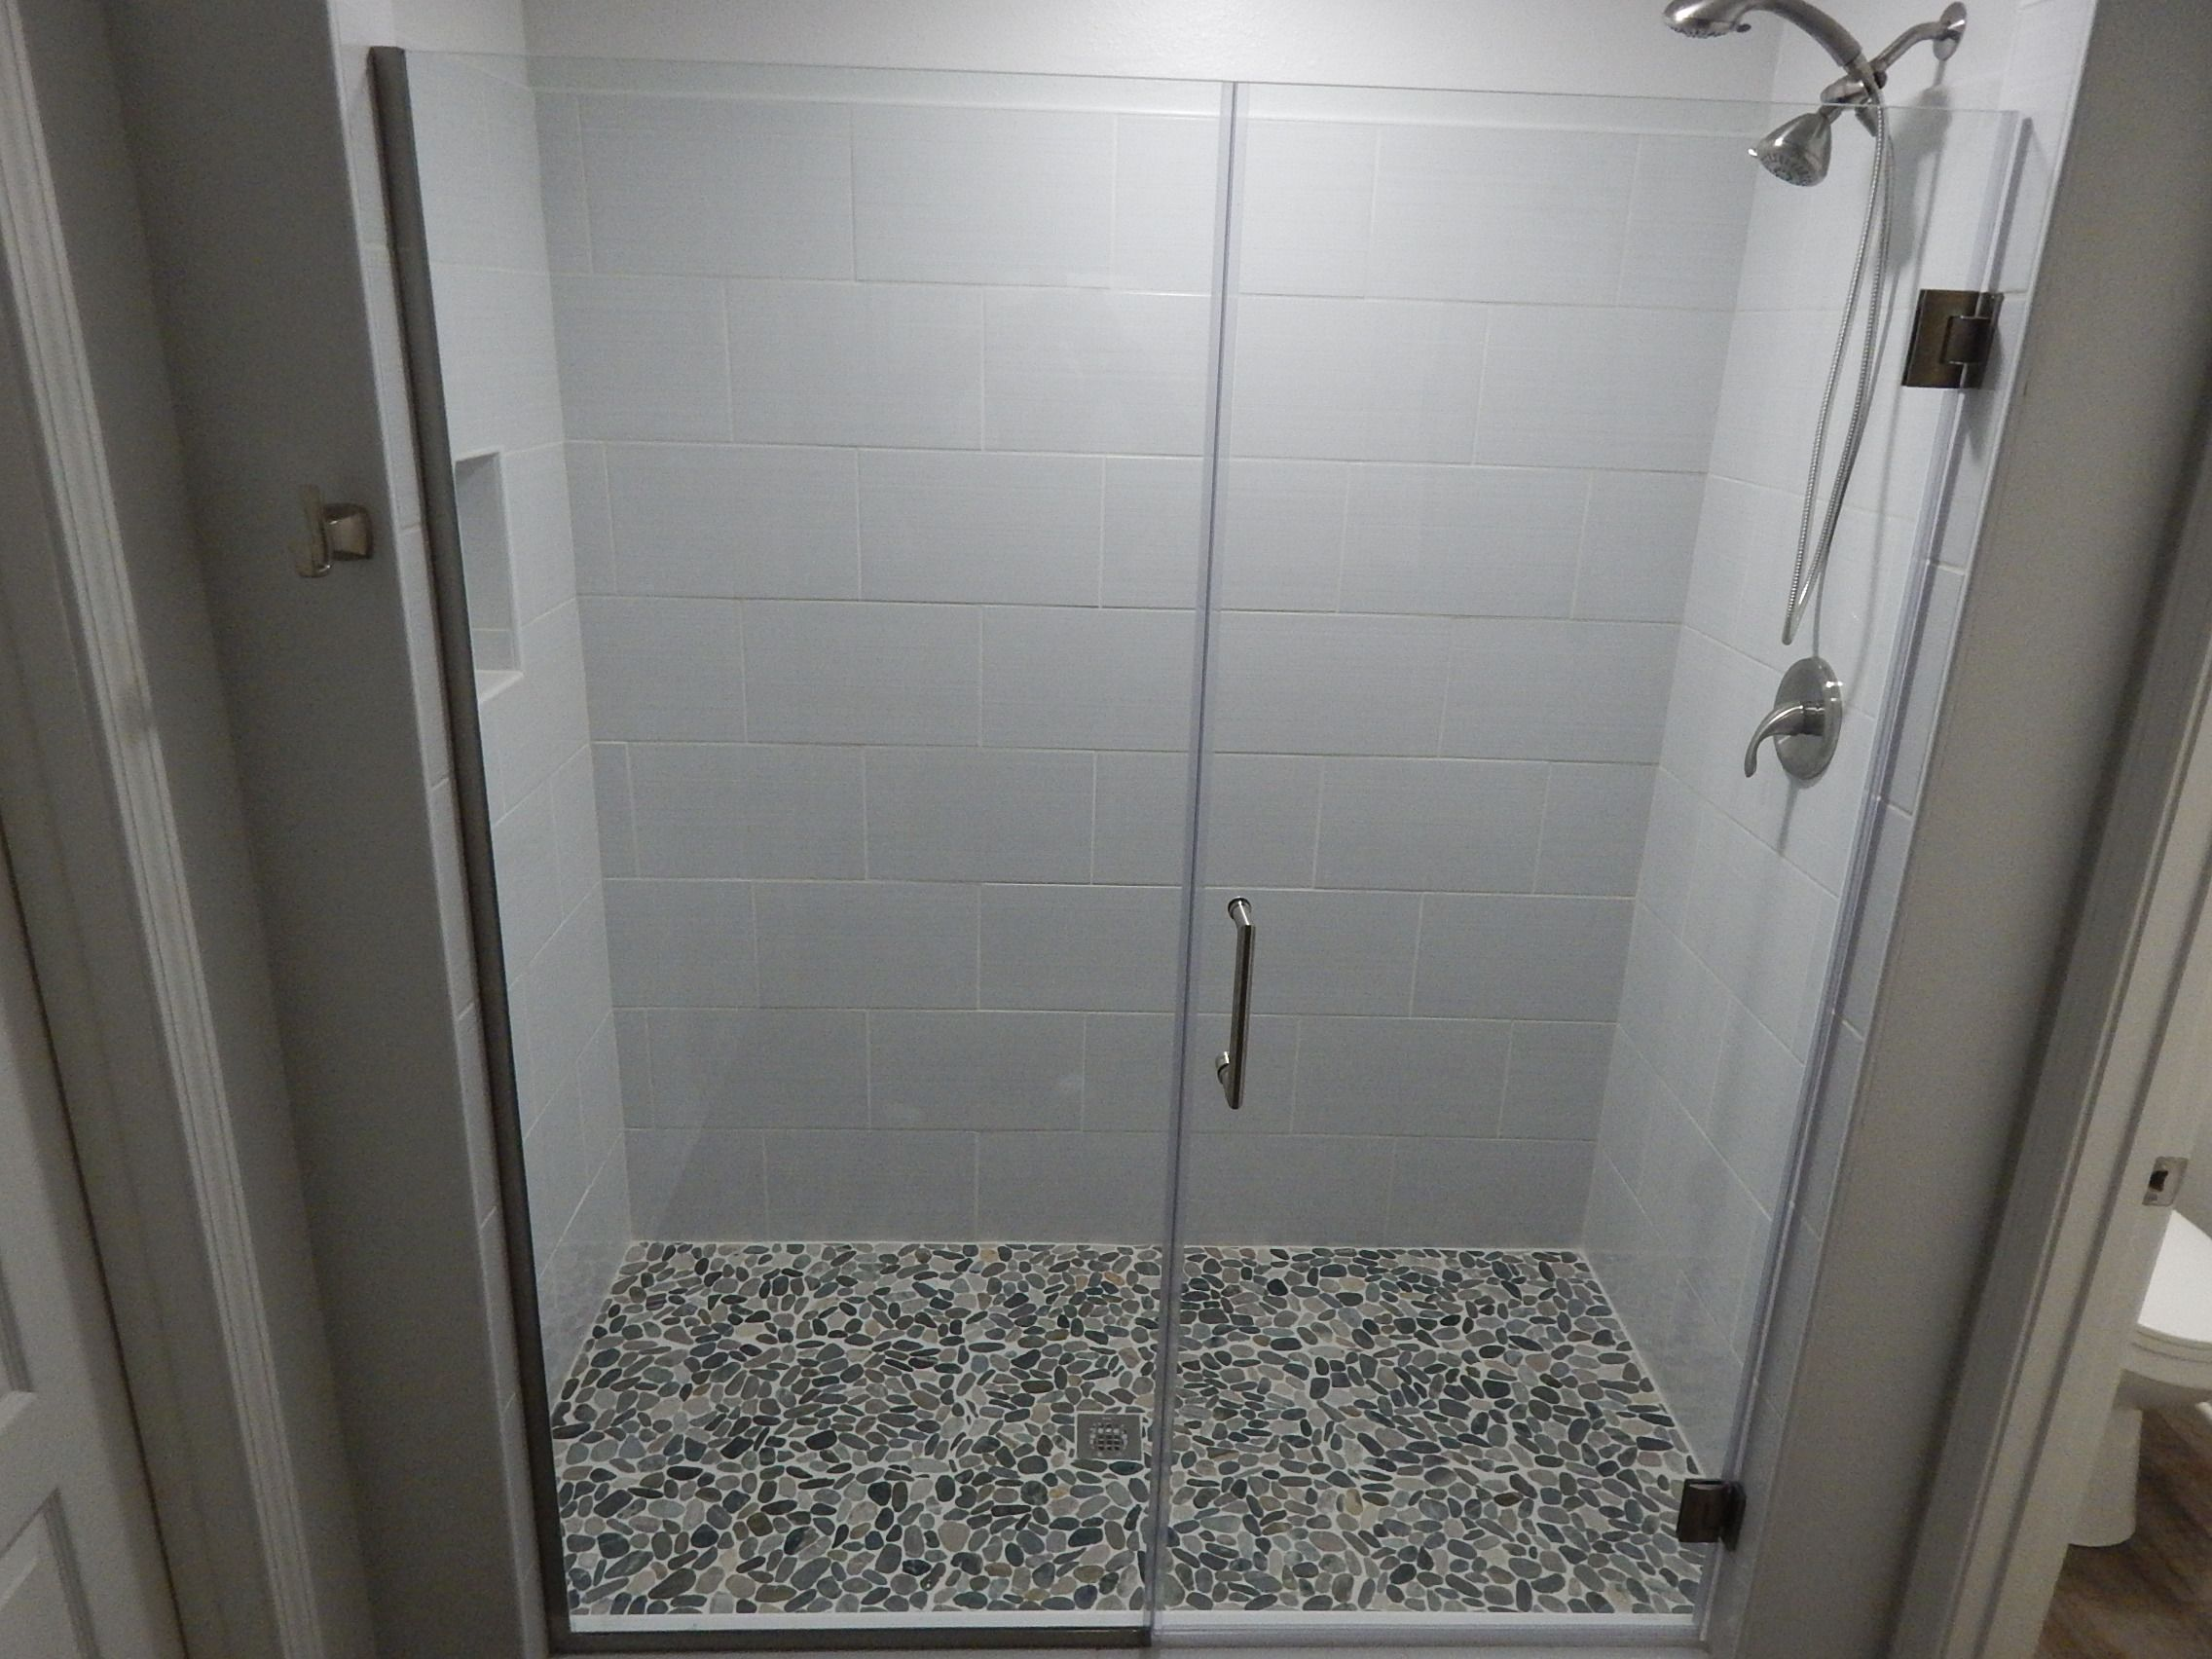 From LOWES Shower Surround Tile Blairlock White Ceramic Tile - 16 x 16 white ceramic floor tile